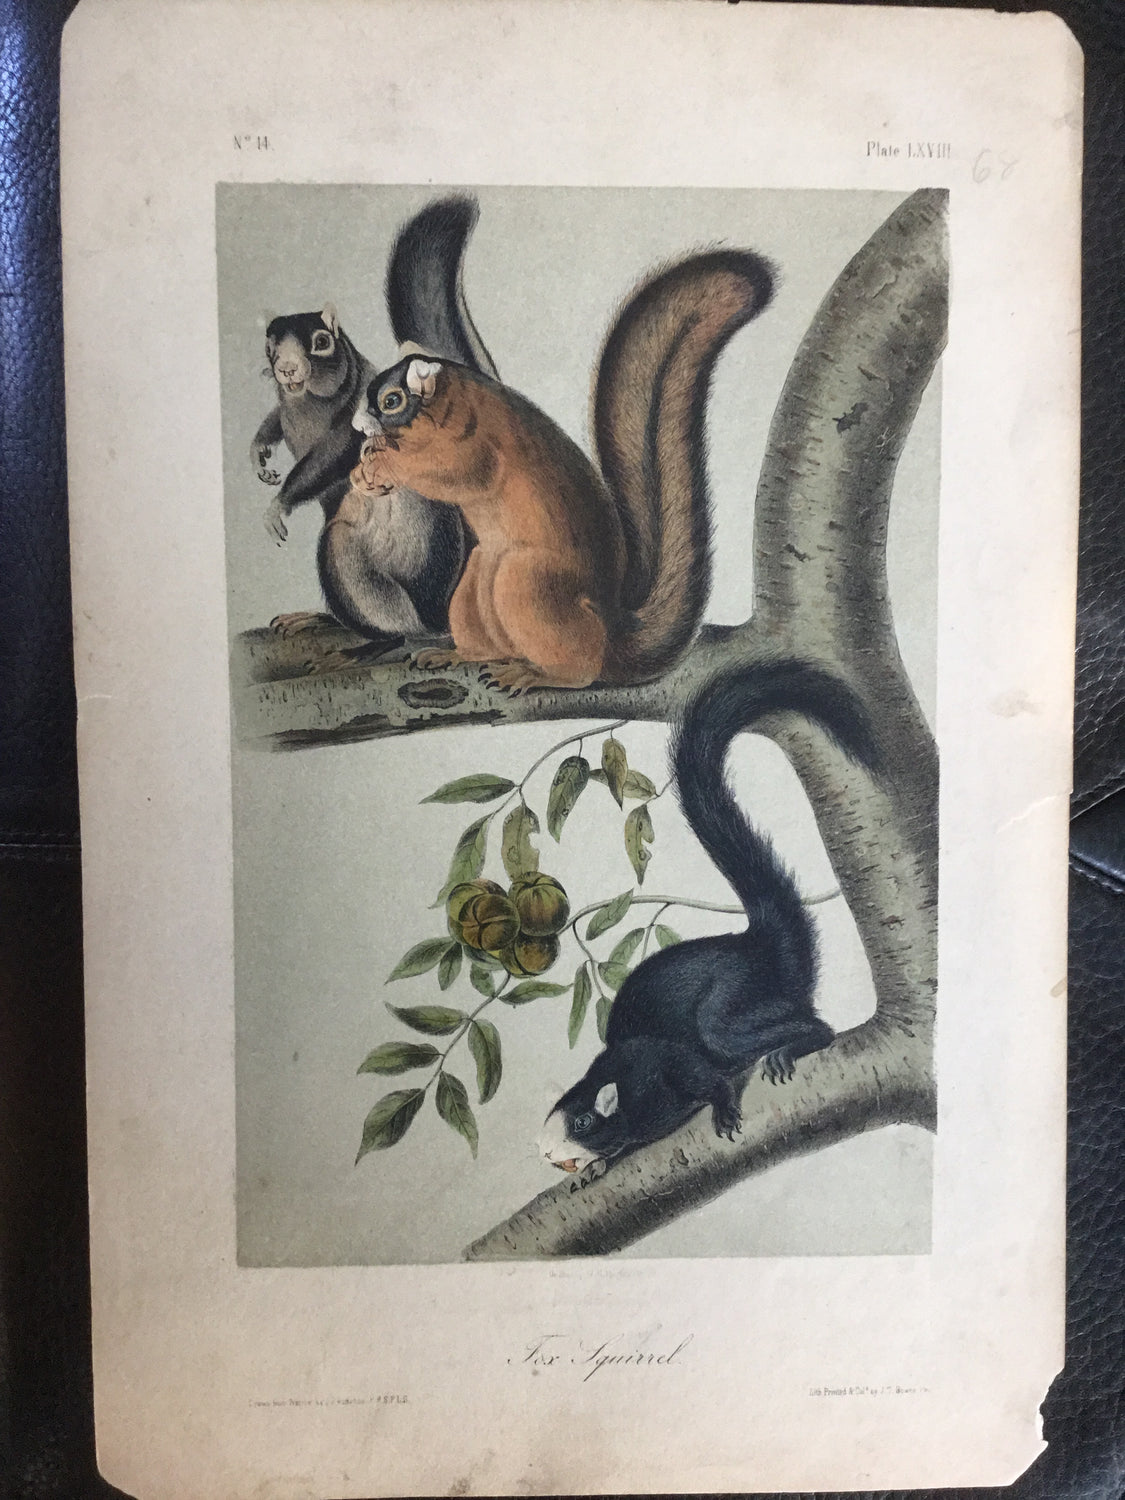 Lord-Hopkins Collection - Fox Squirrel, Shop note on back